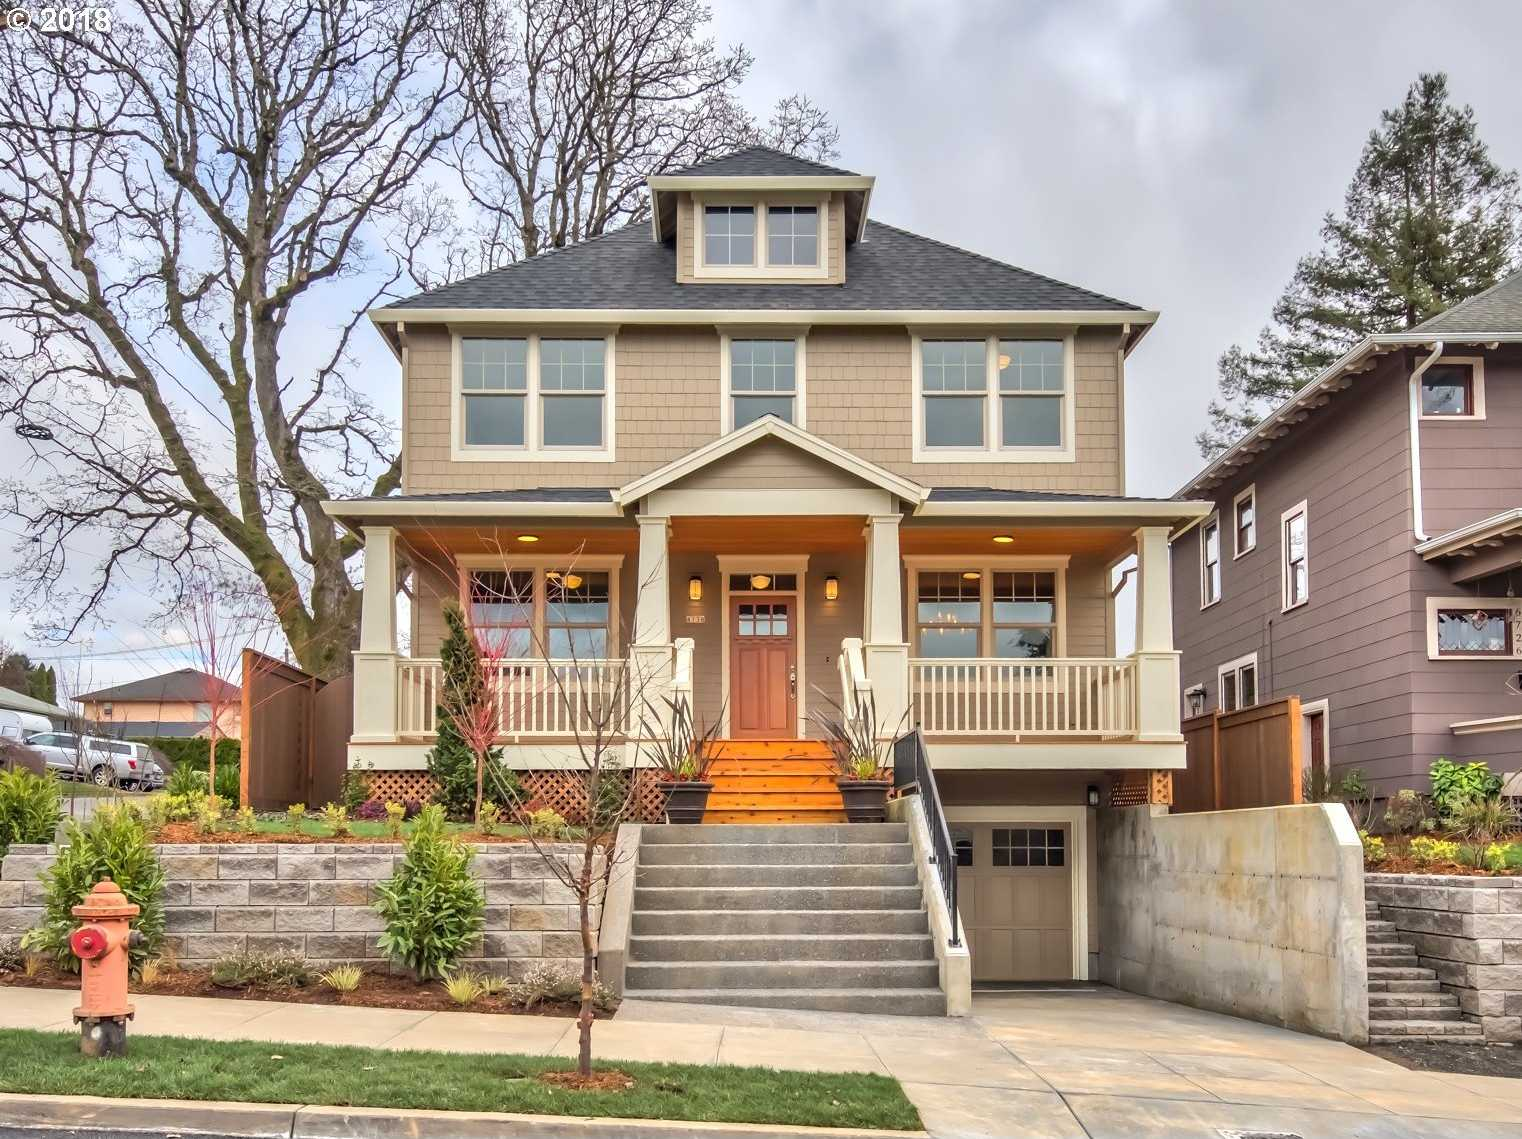 $899,900 - 4Br/3Ba -  for Sale in St Johns, Portland